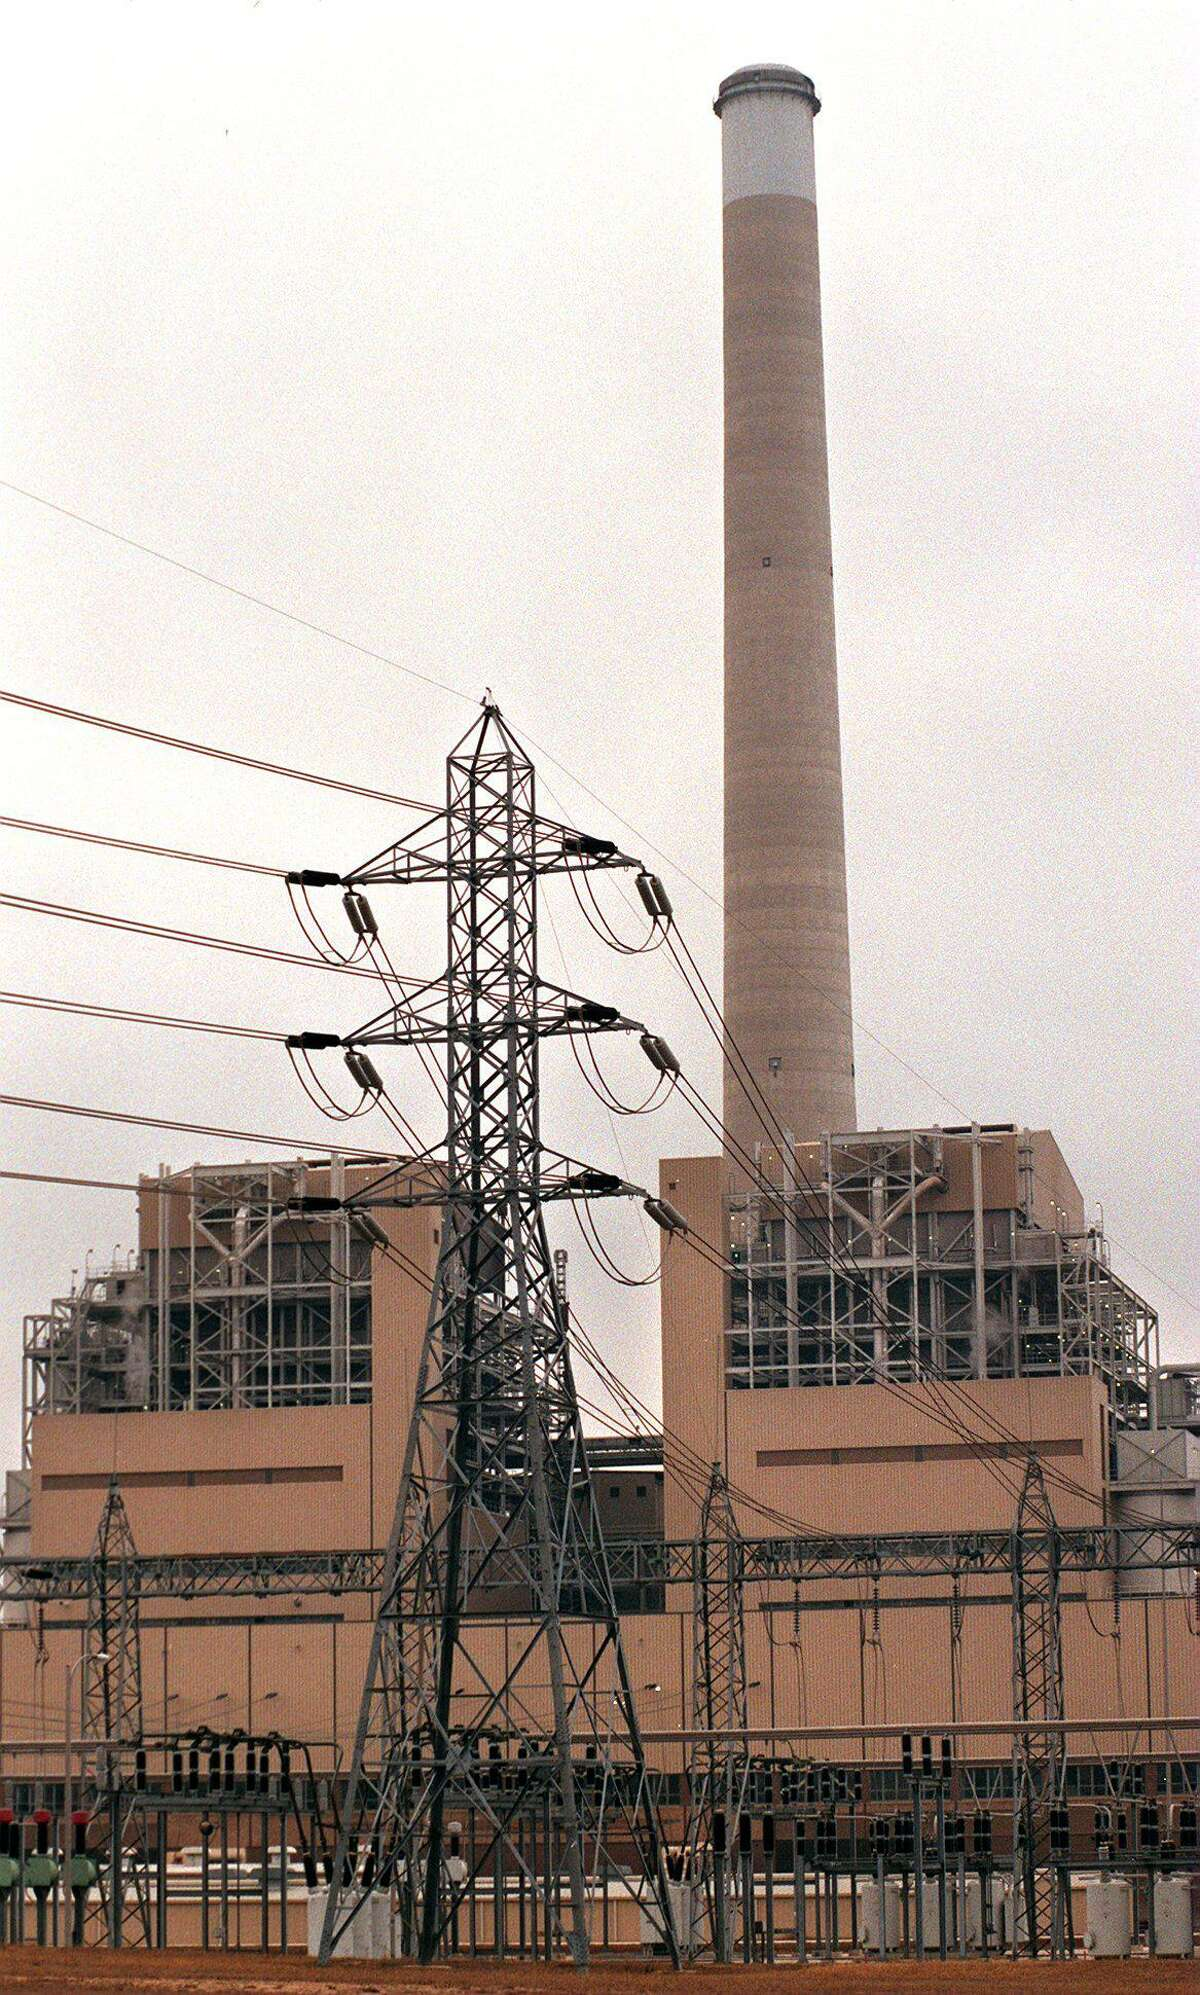 CPS Energy's J.T. Deely coal-fired power plant is scheduled to be mothballed by the end of 2018, according to CPS officials. Built in 1977, the closure of the plant is part of the utility's plan to increase its usage of renewable resources to 20 percent and reduce its environmental impact.